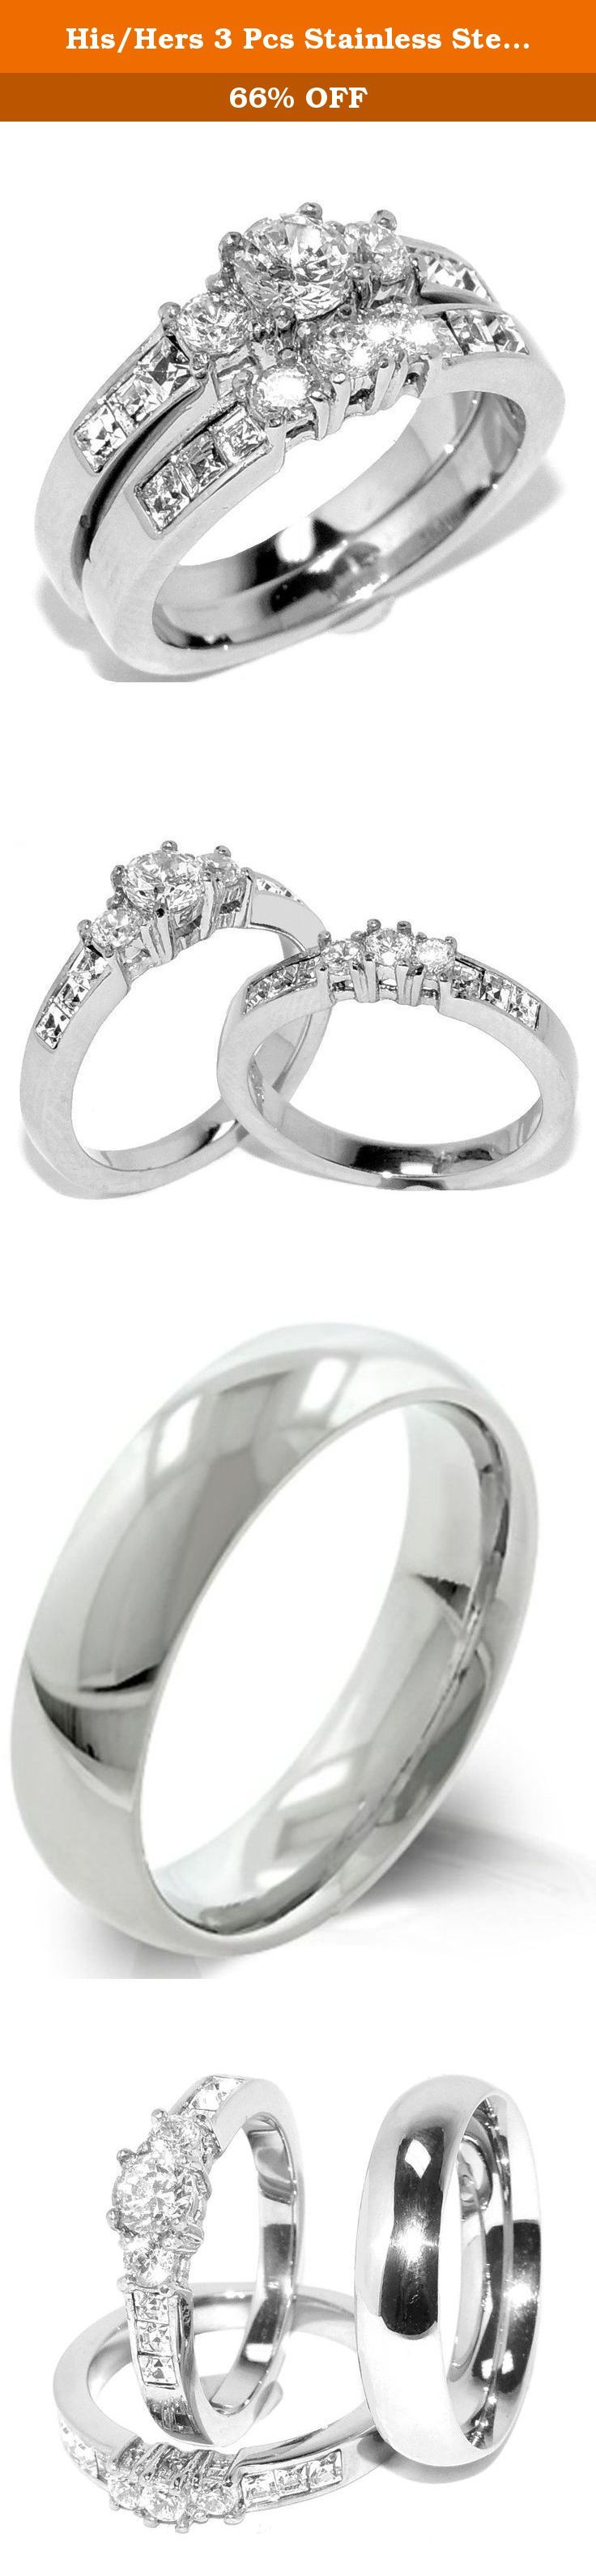 1000 ideas about engagement ring insurance on